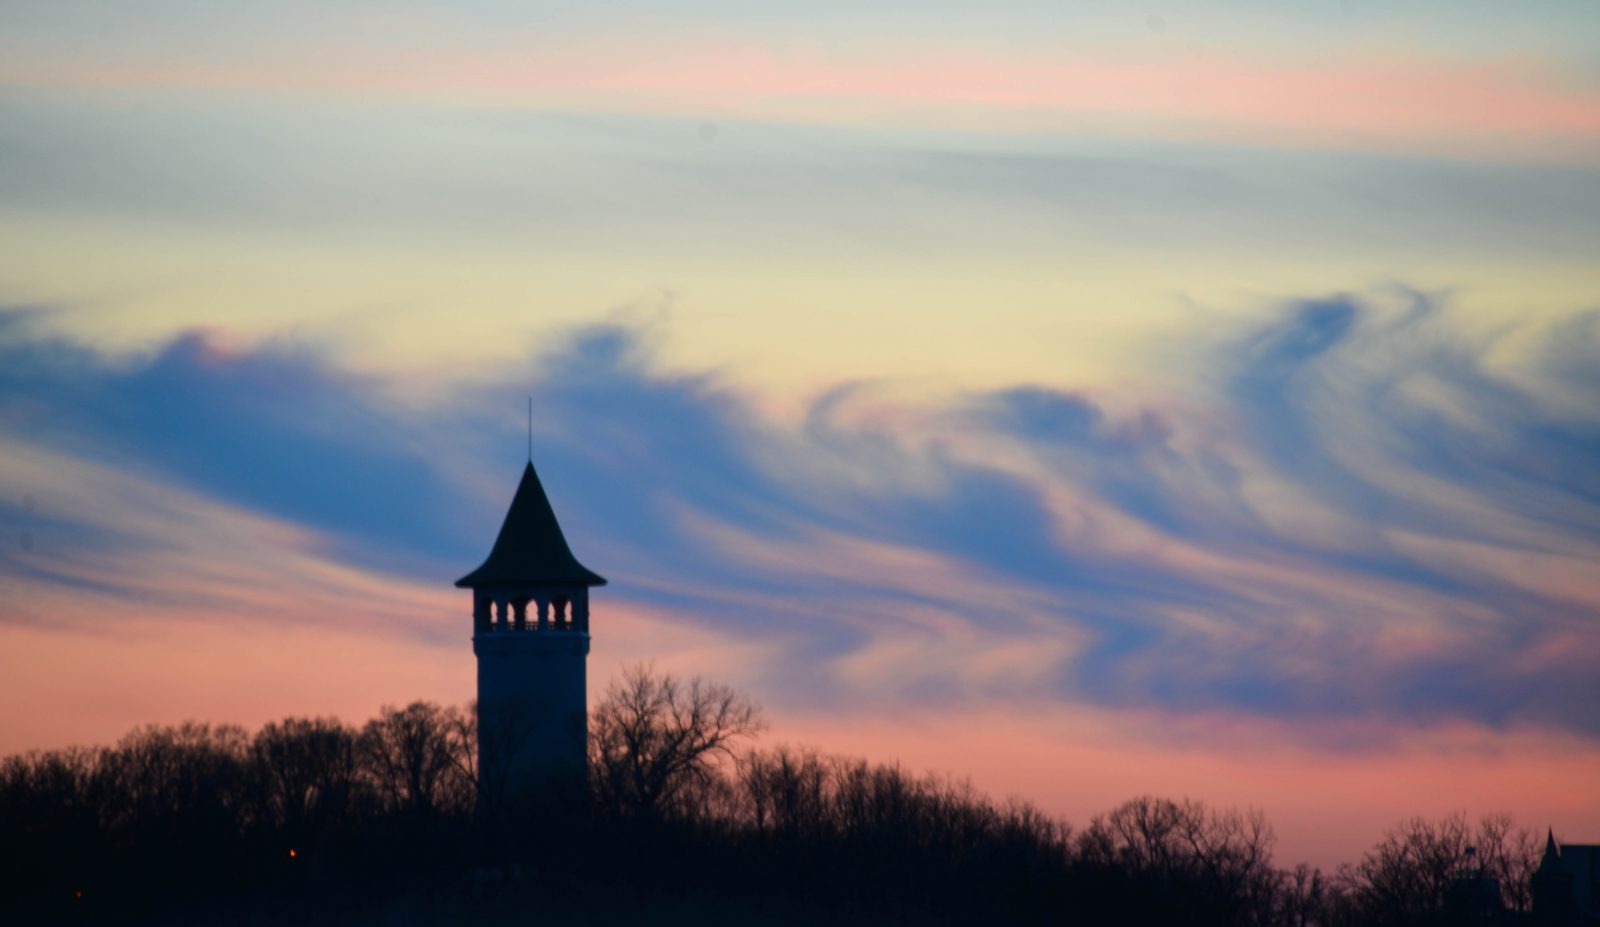 Witches Hat Tower at Sunset